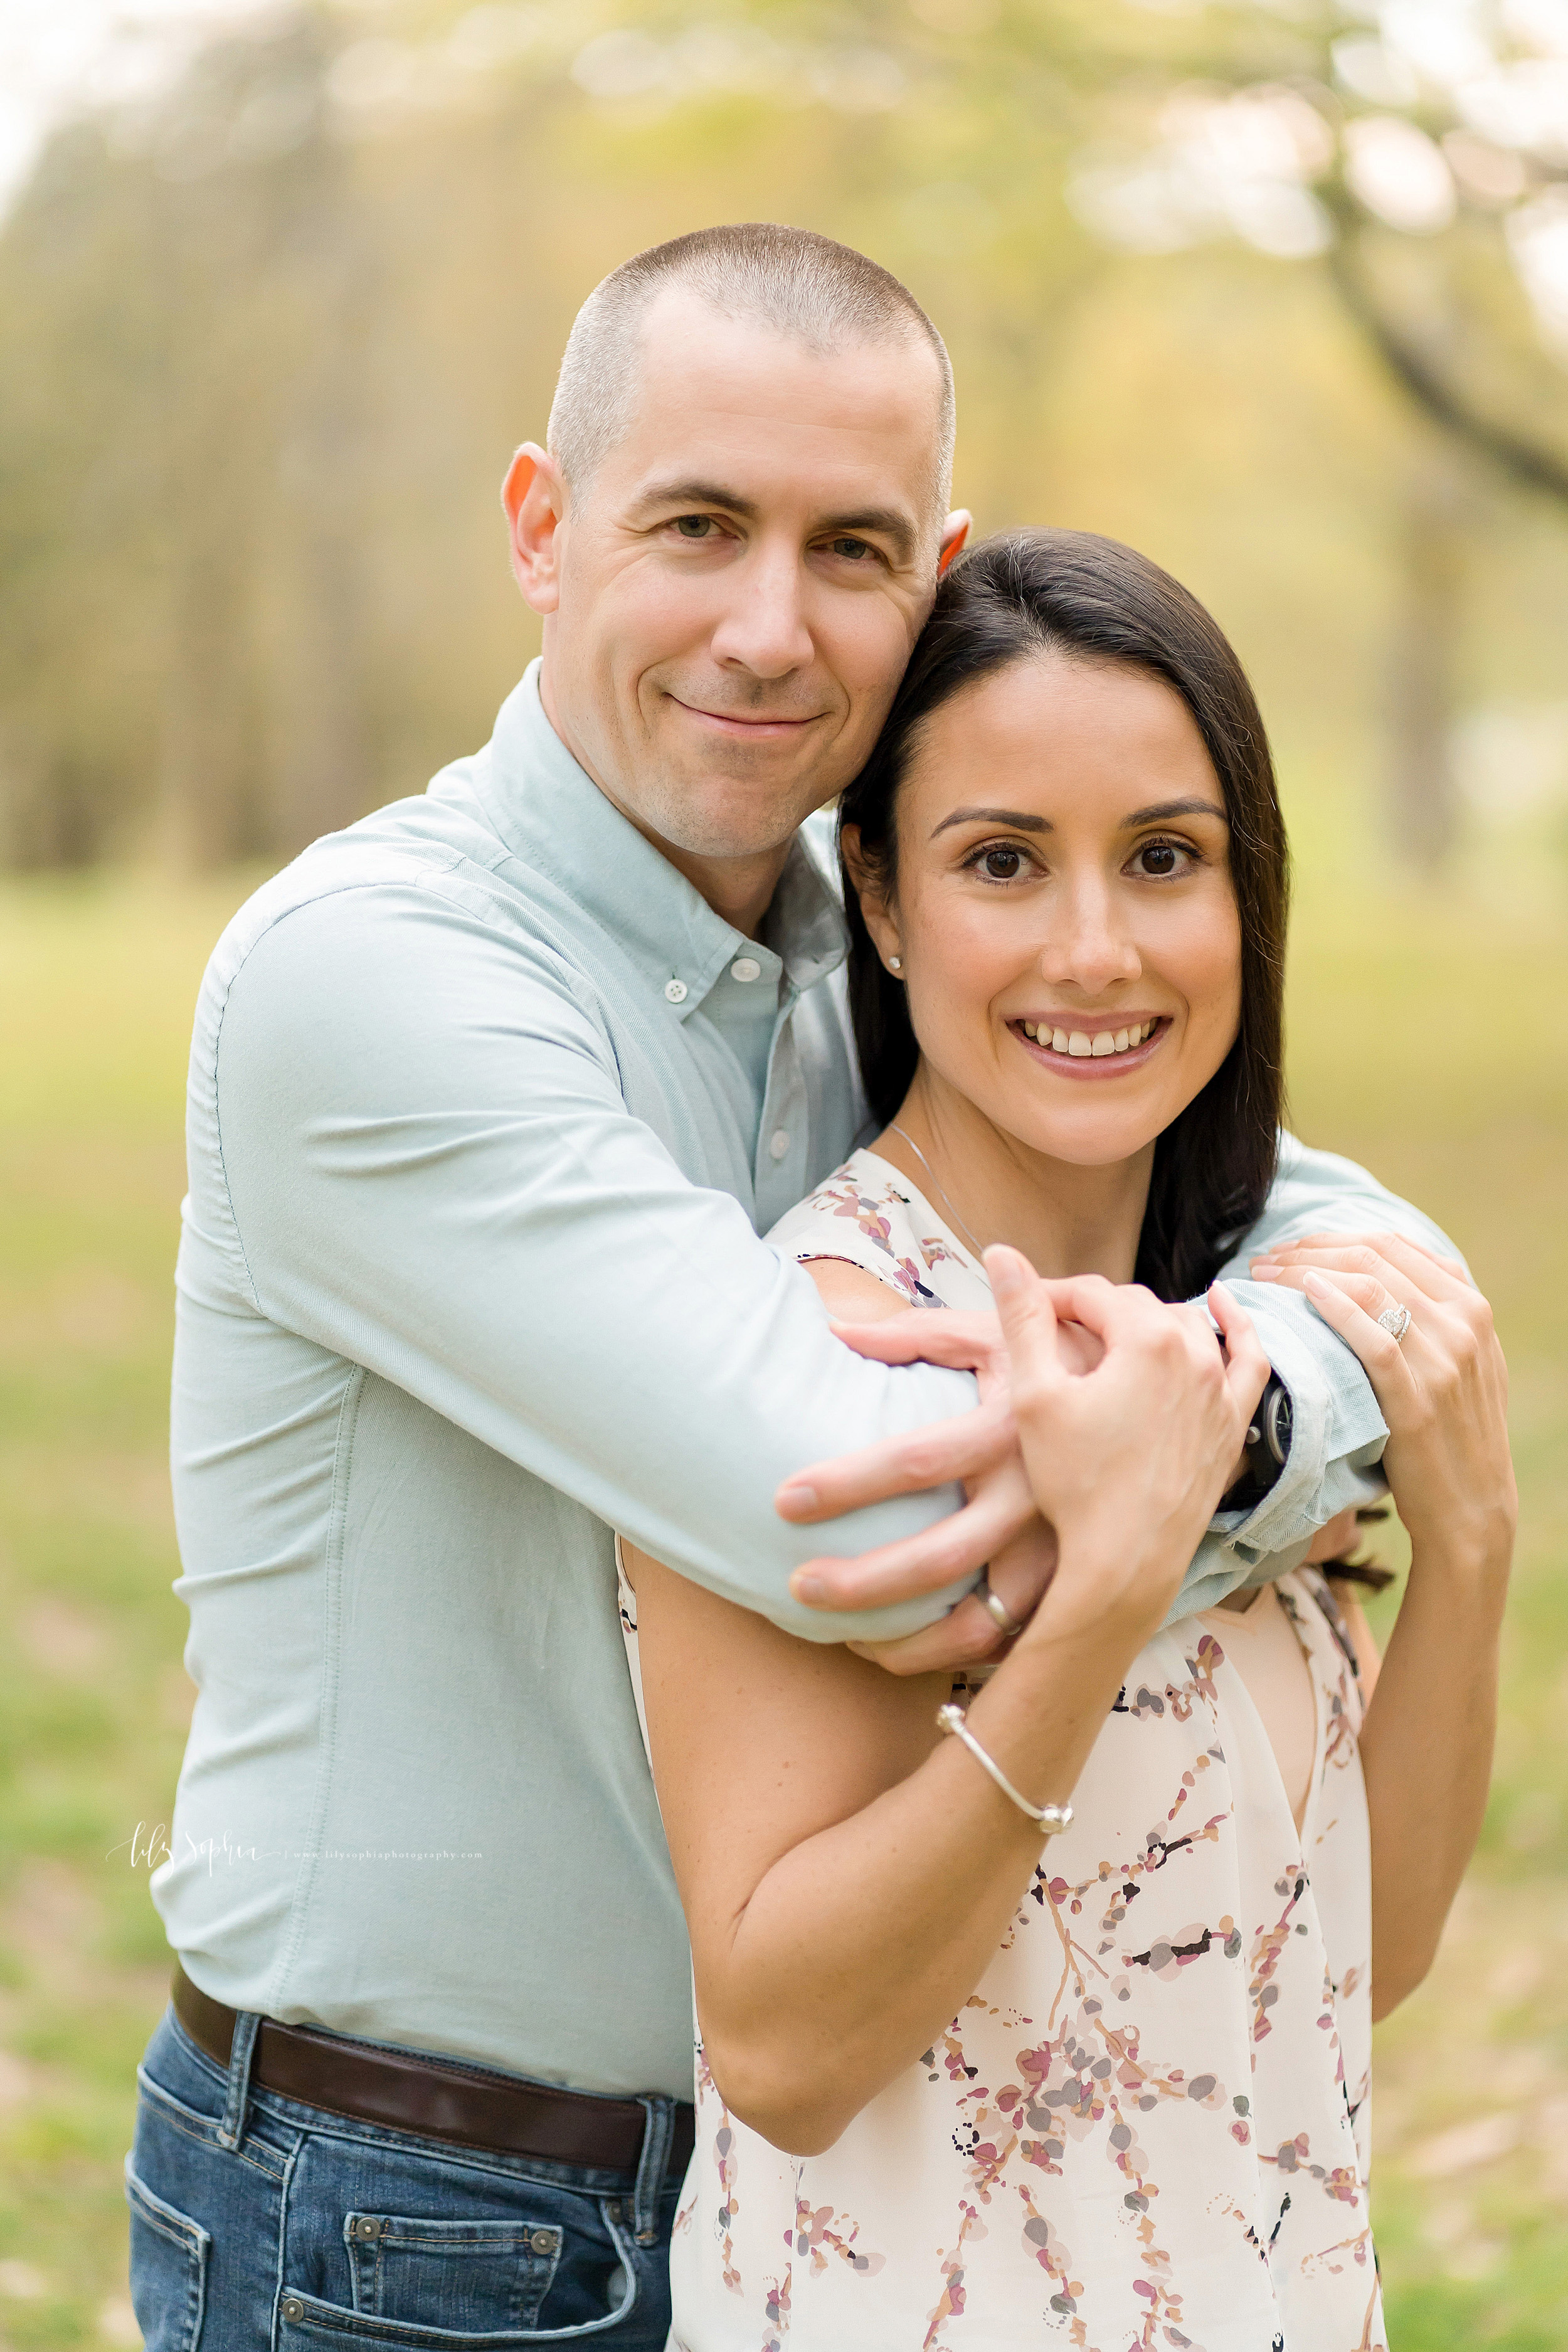 Image of a smiling husband and wife in a park in Atlanta at sunset.  Dad is standing behind his wife with his hands wrapped around her shoulders.  Mom is holding Dad's arms.